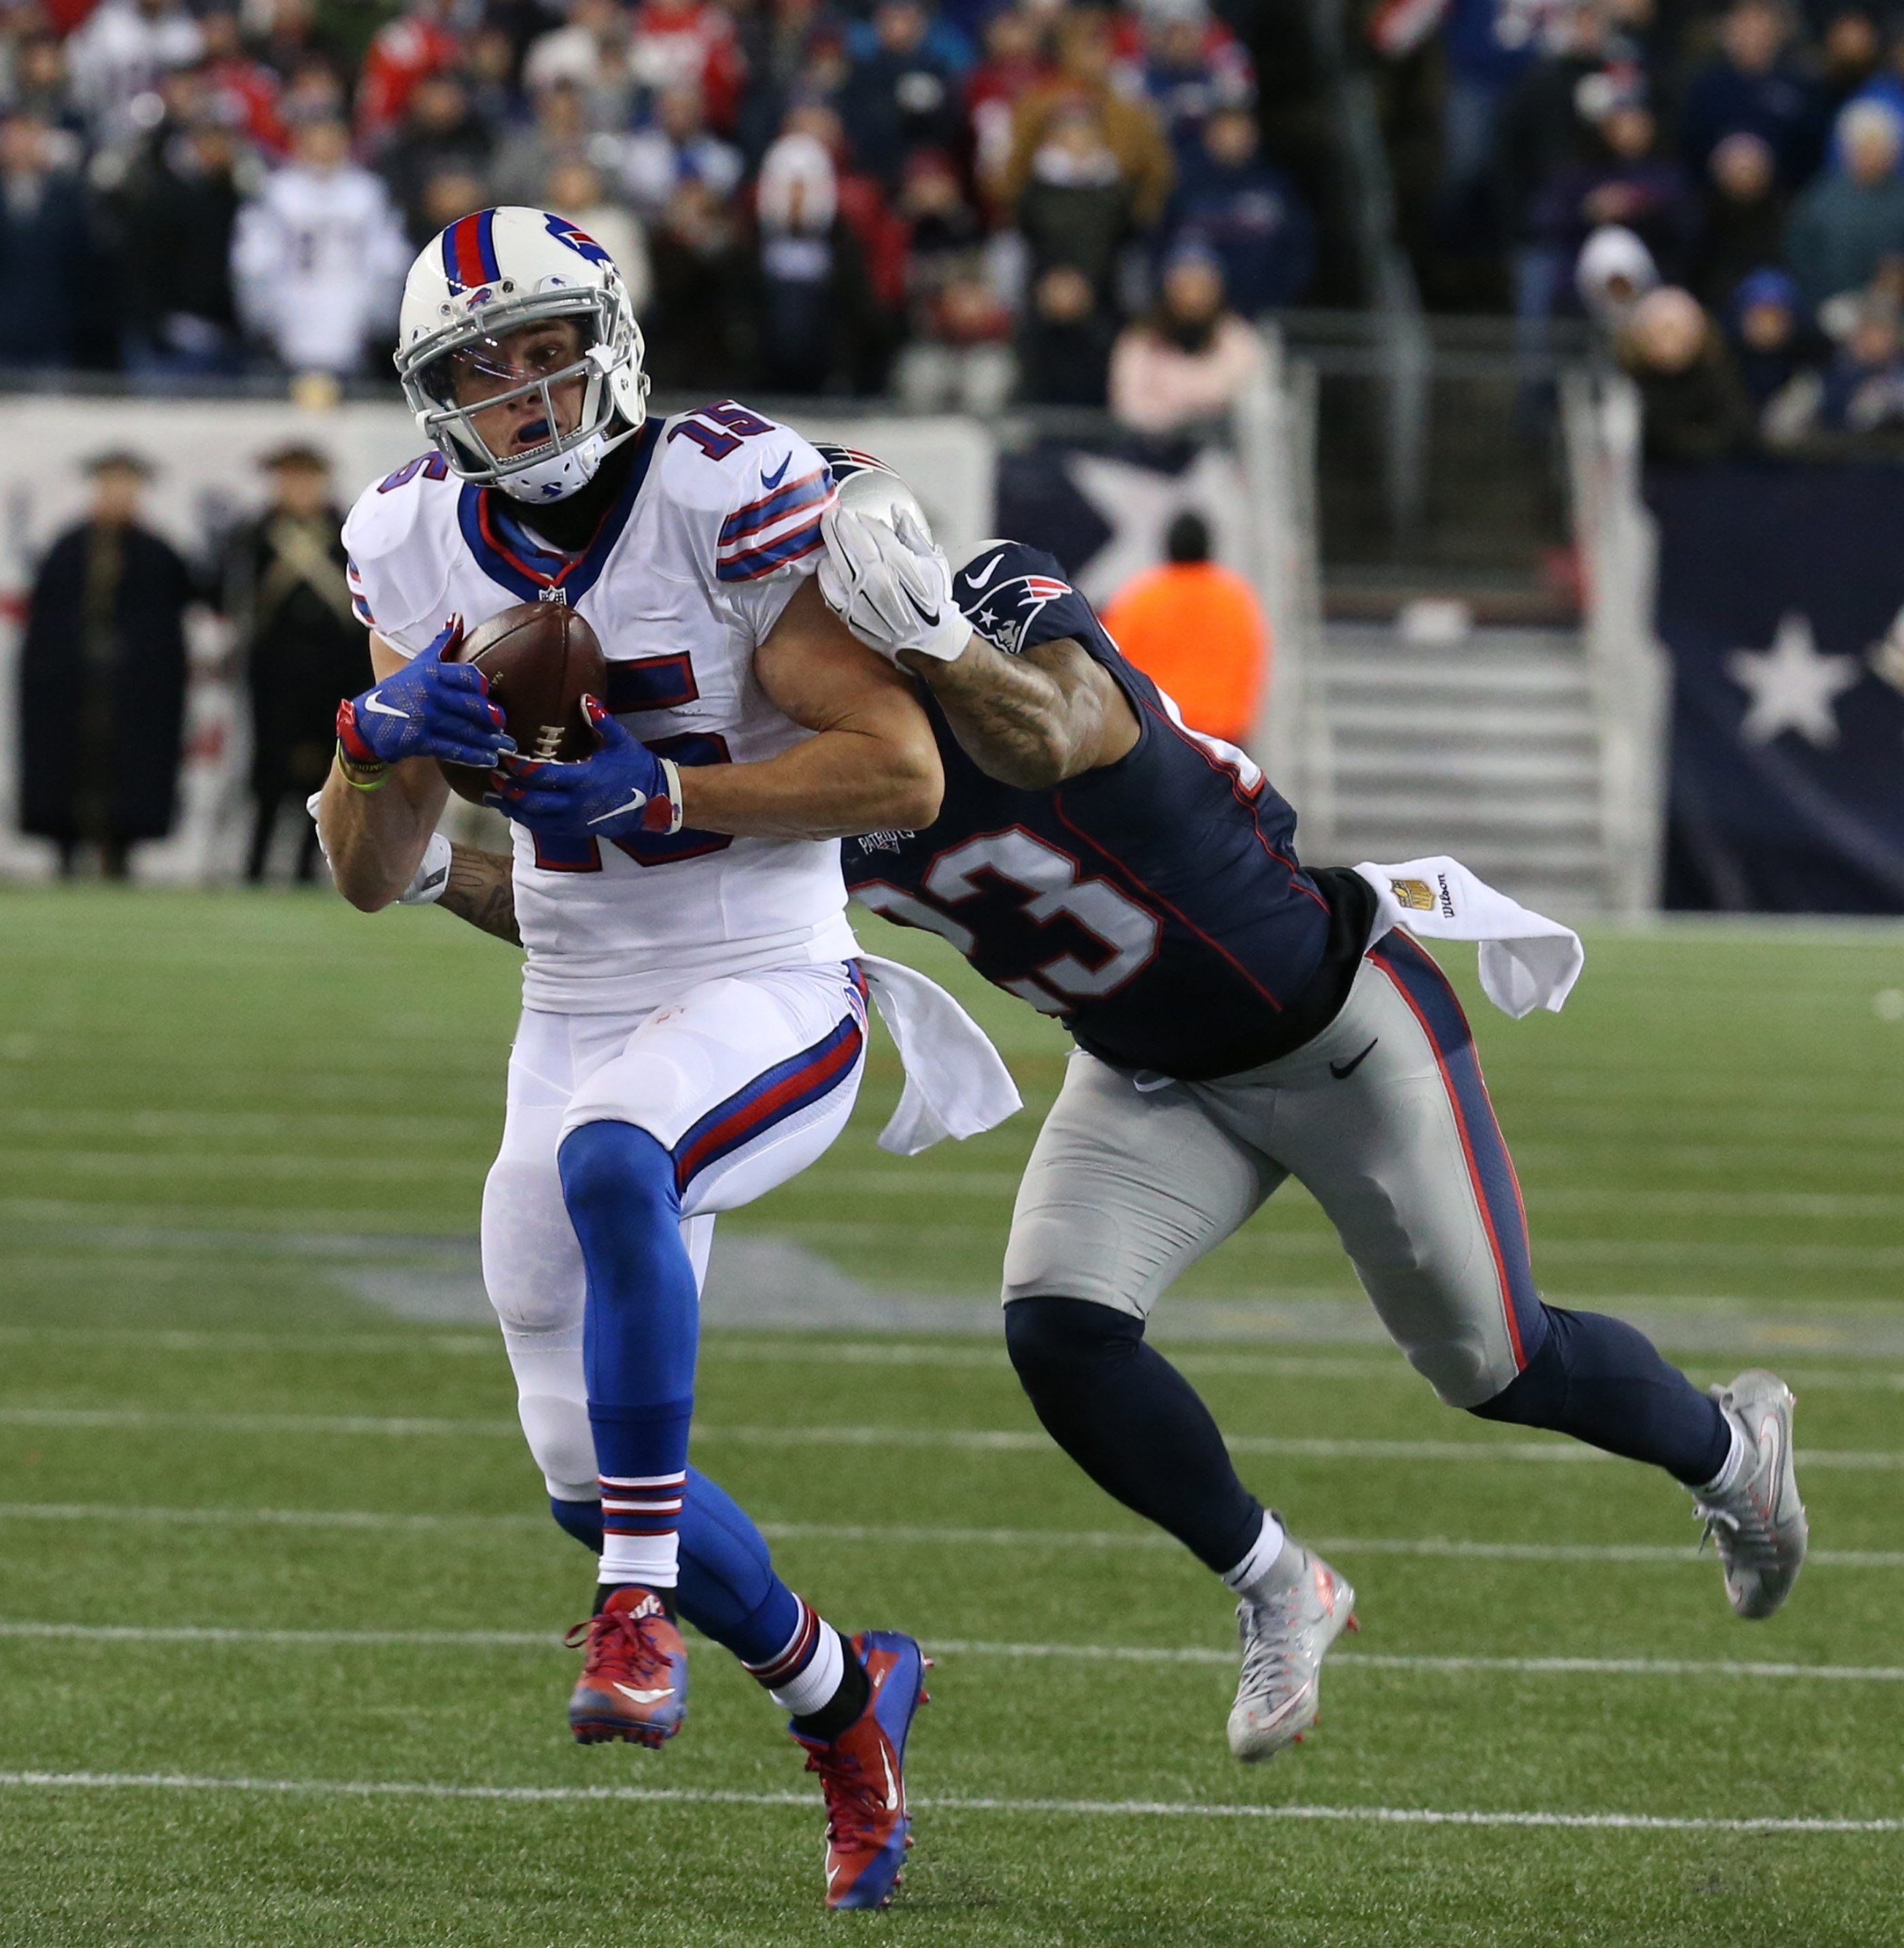 Buffalo Bills wide receiver Chris Hogan catches a pass in the fourth quarter at Gillette Stadium in Foxborough, Mass., on Nov. 23, 2015.